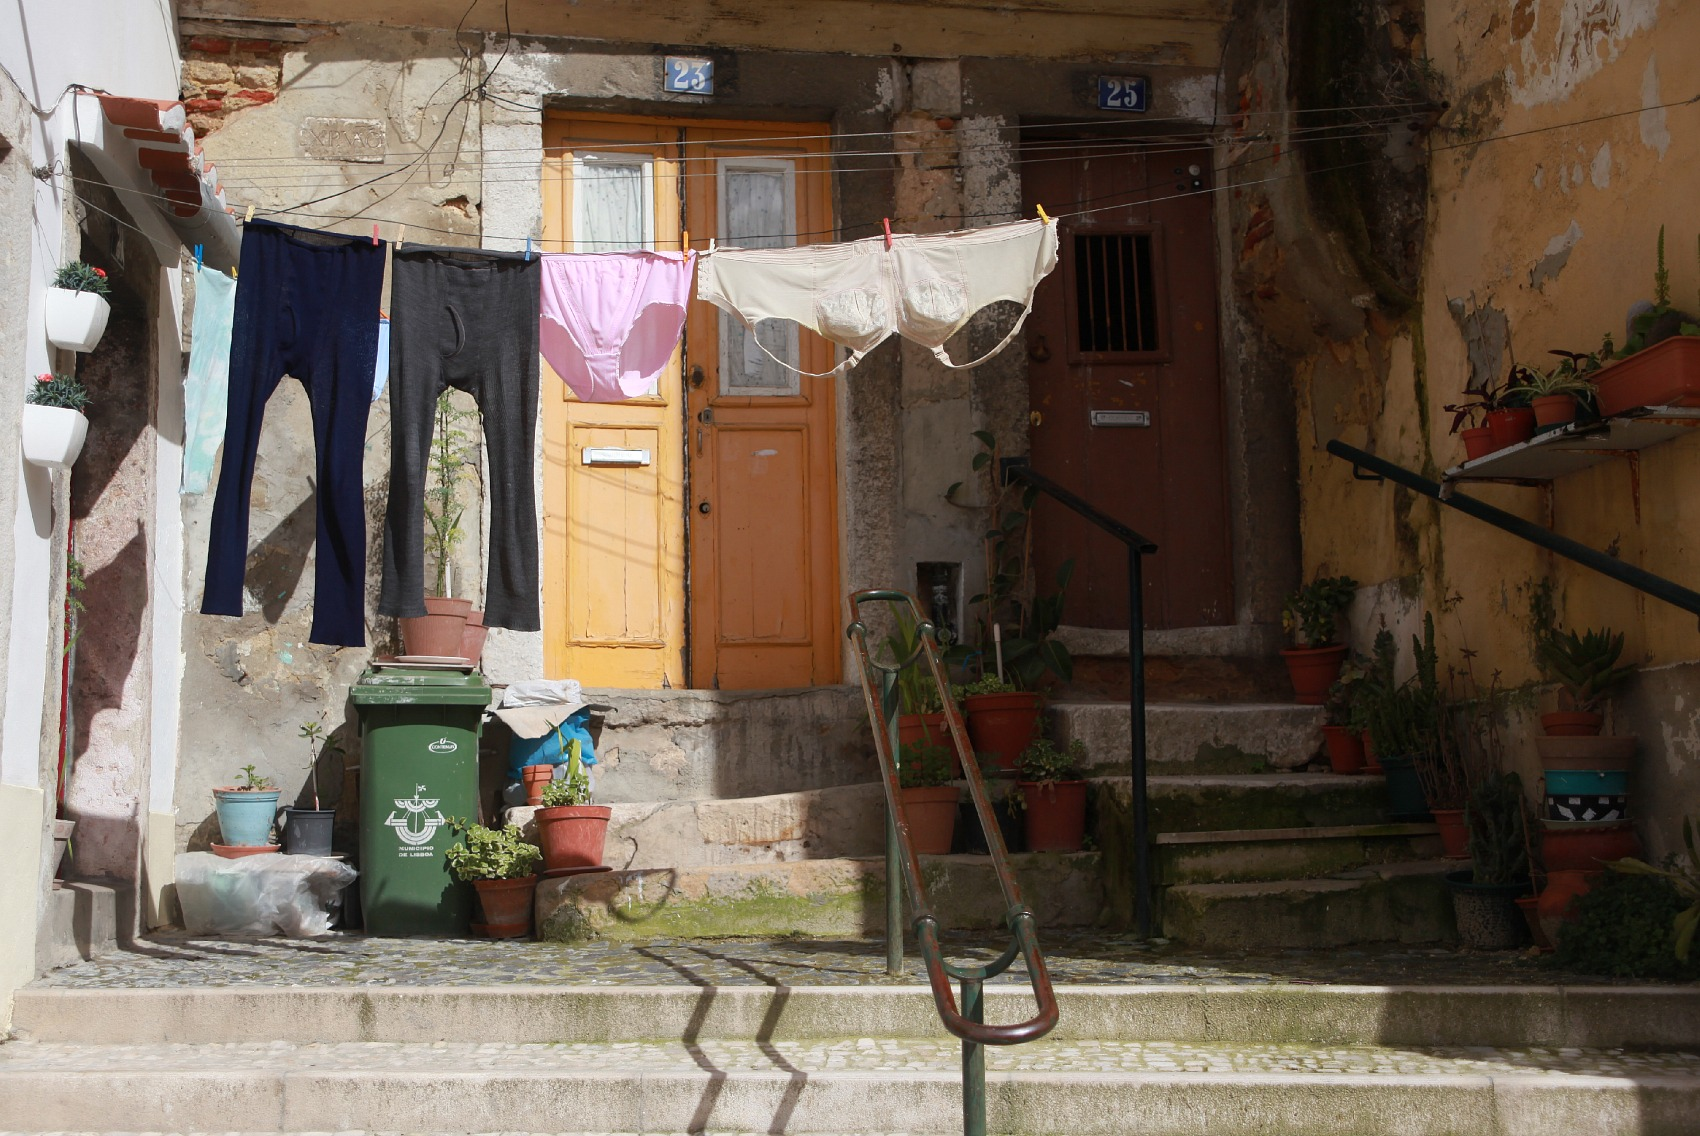 Laundry Day by Lisbon by Light